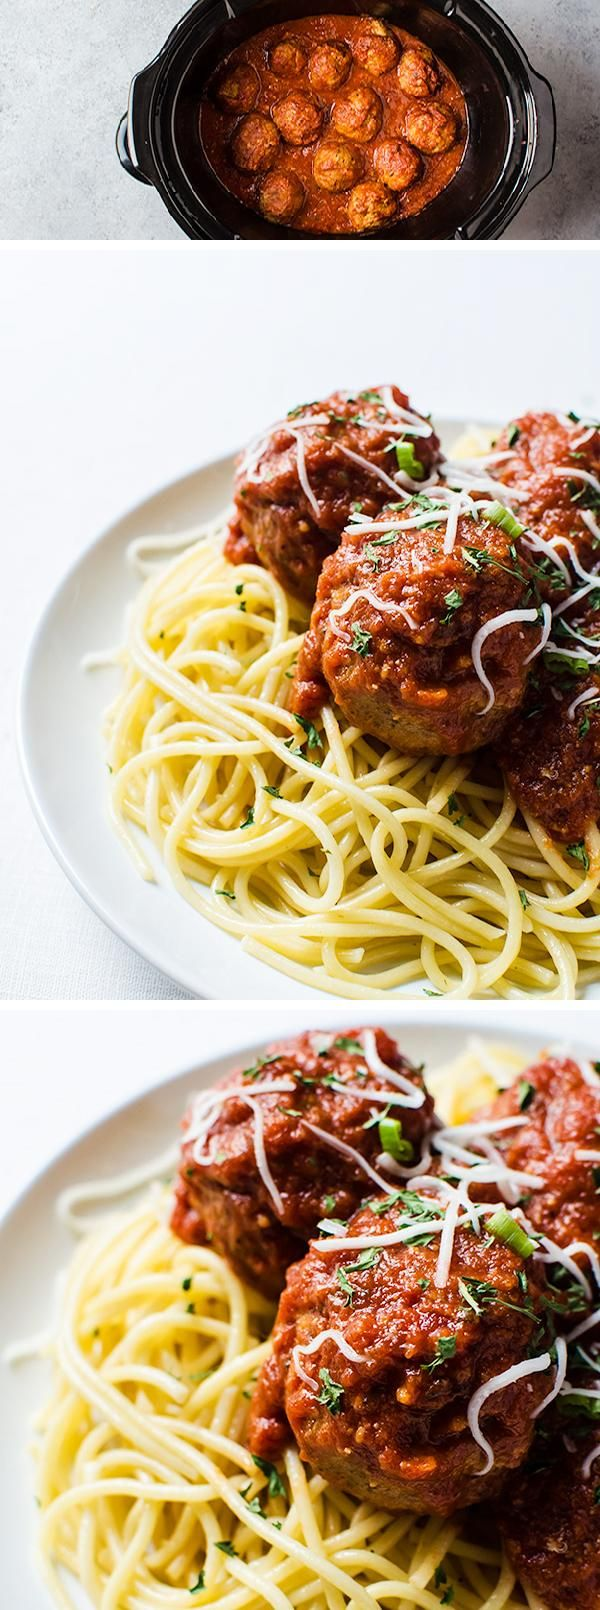 These easy SLOW COOKER TURKEY MEATBALLS are a deliciously easy weeknight dinner you can start in the morning and have ready by dinner. Family friendly, and kid approved!